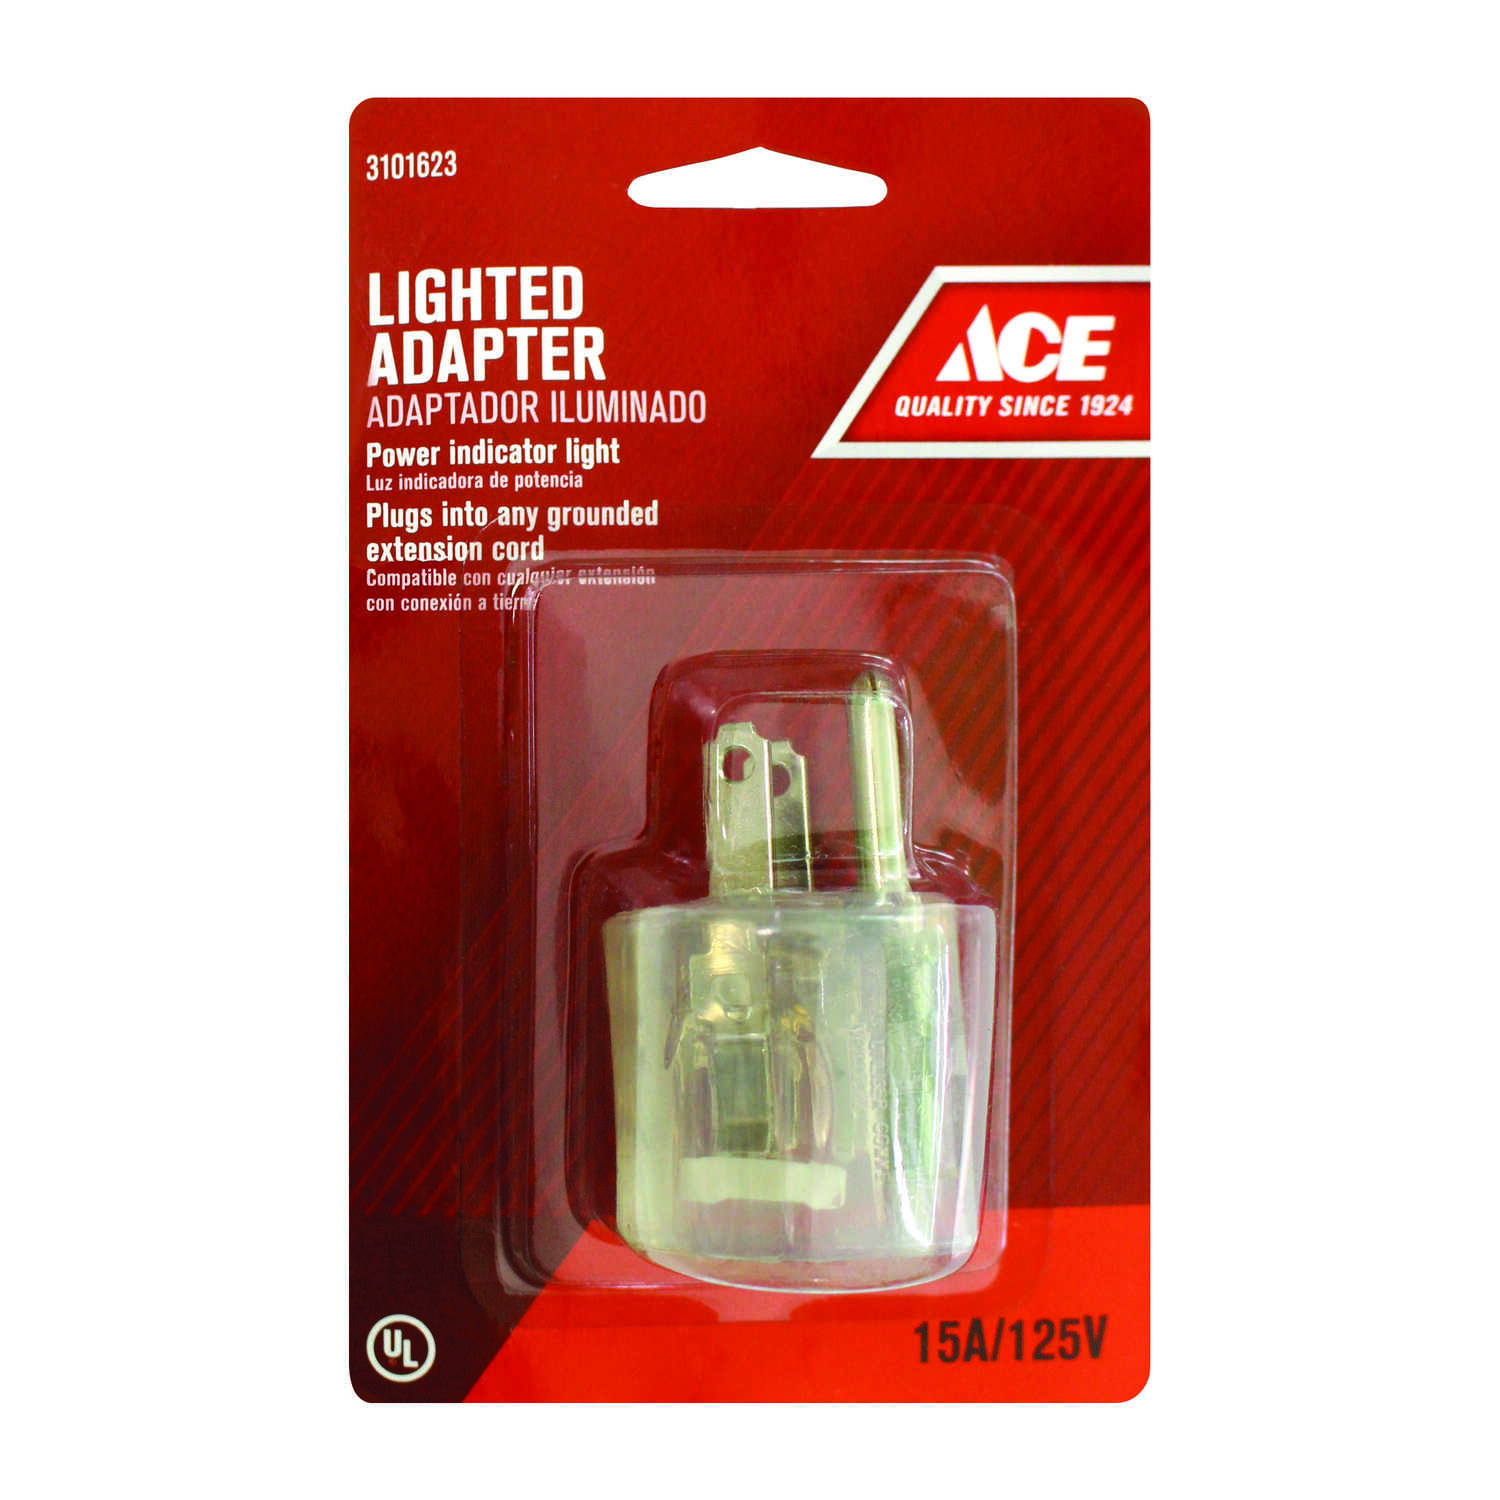 Ace  Grounded  1 outlets Lighted Adapter  1 pk